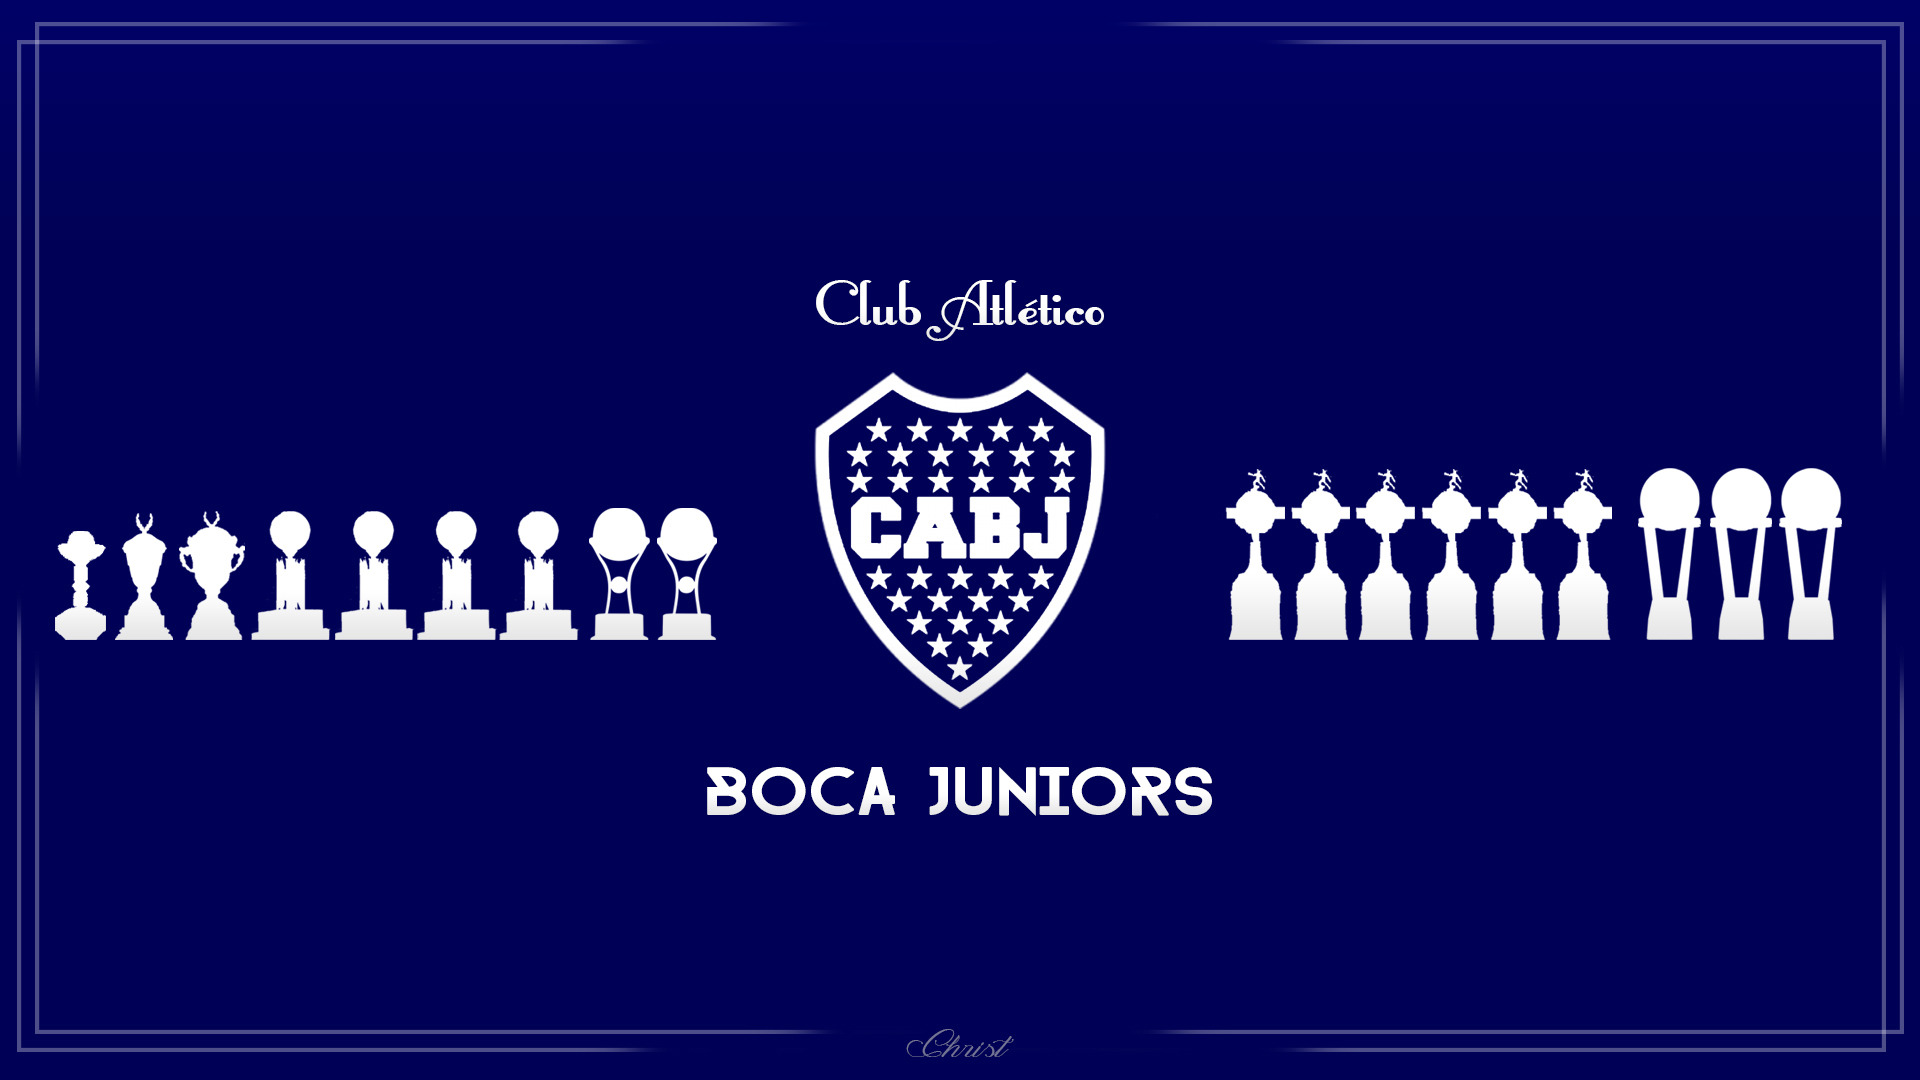 Wallpapers   Boca Juniors Wallpaper Backgrounds 1920x1080